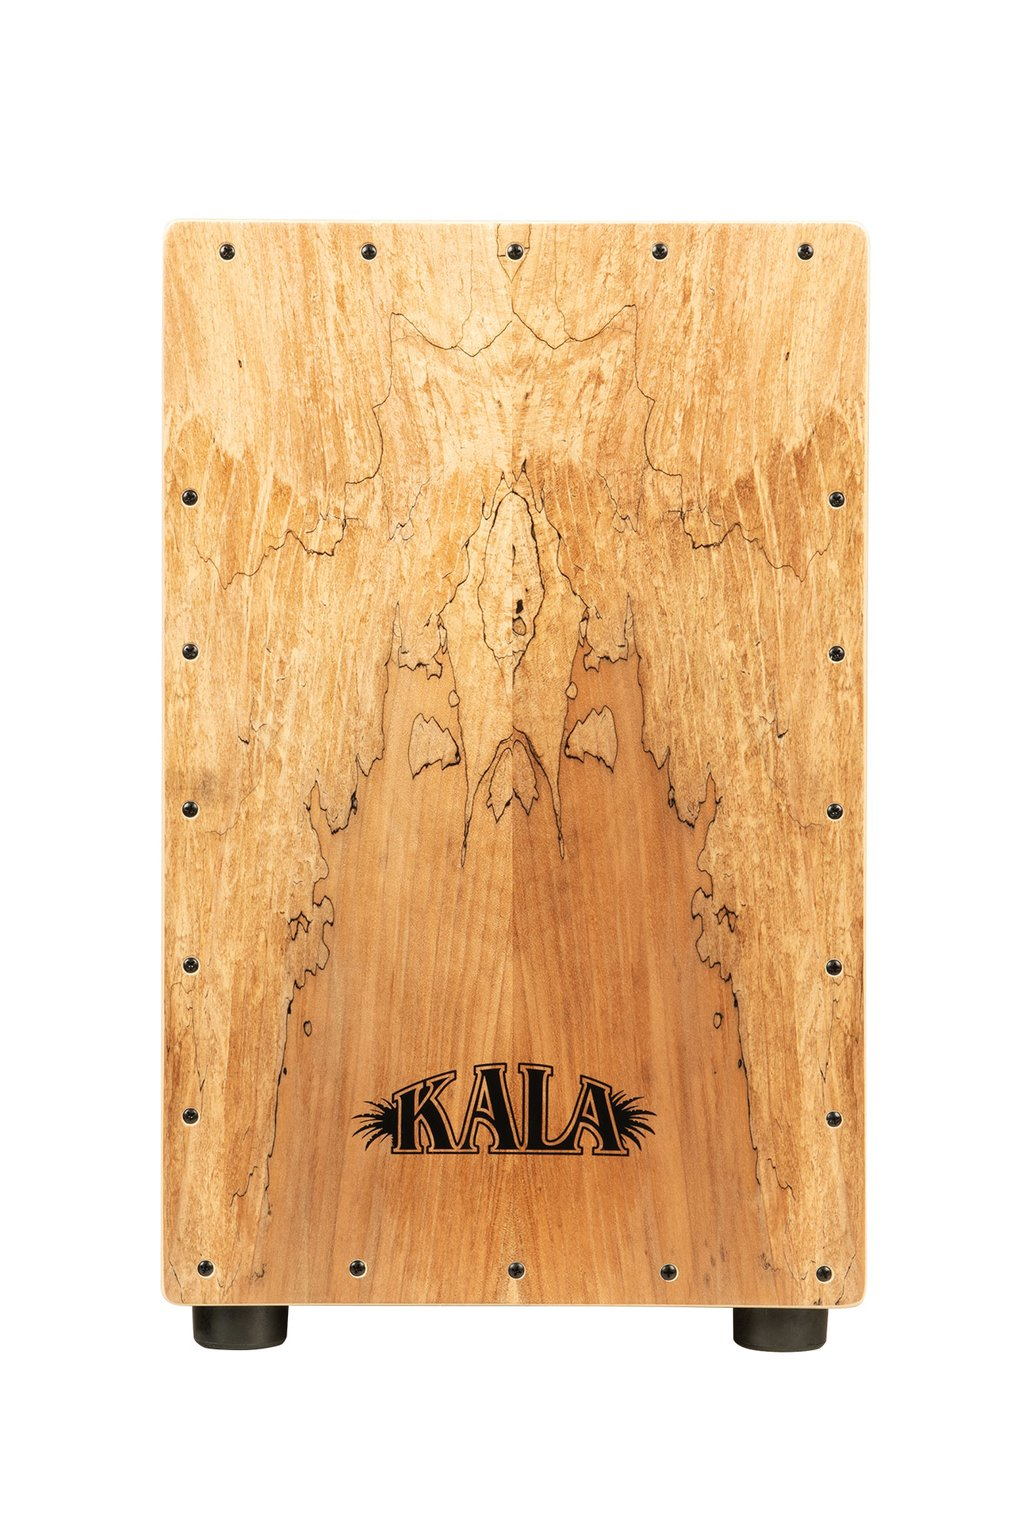 KALA MAPLE percussion box